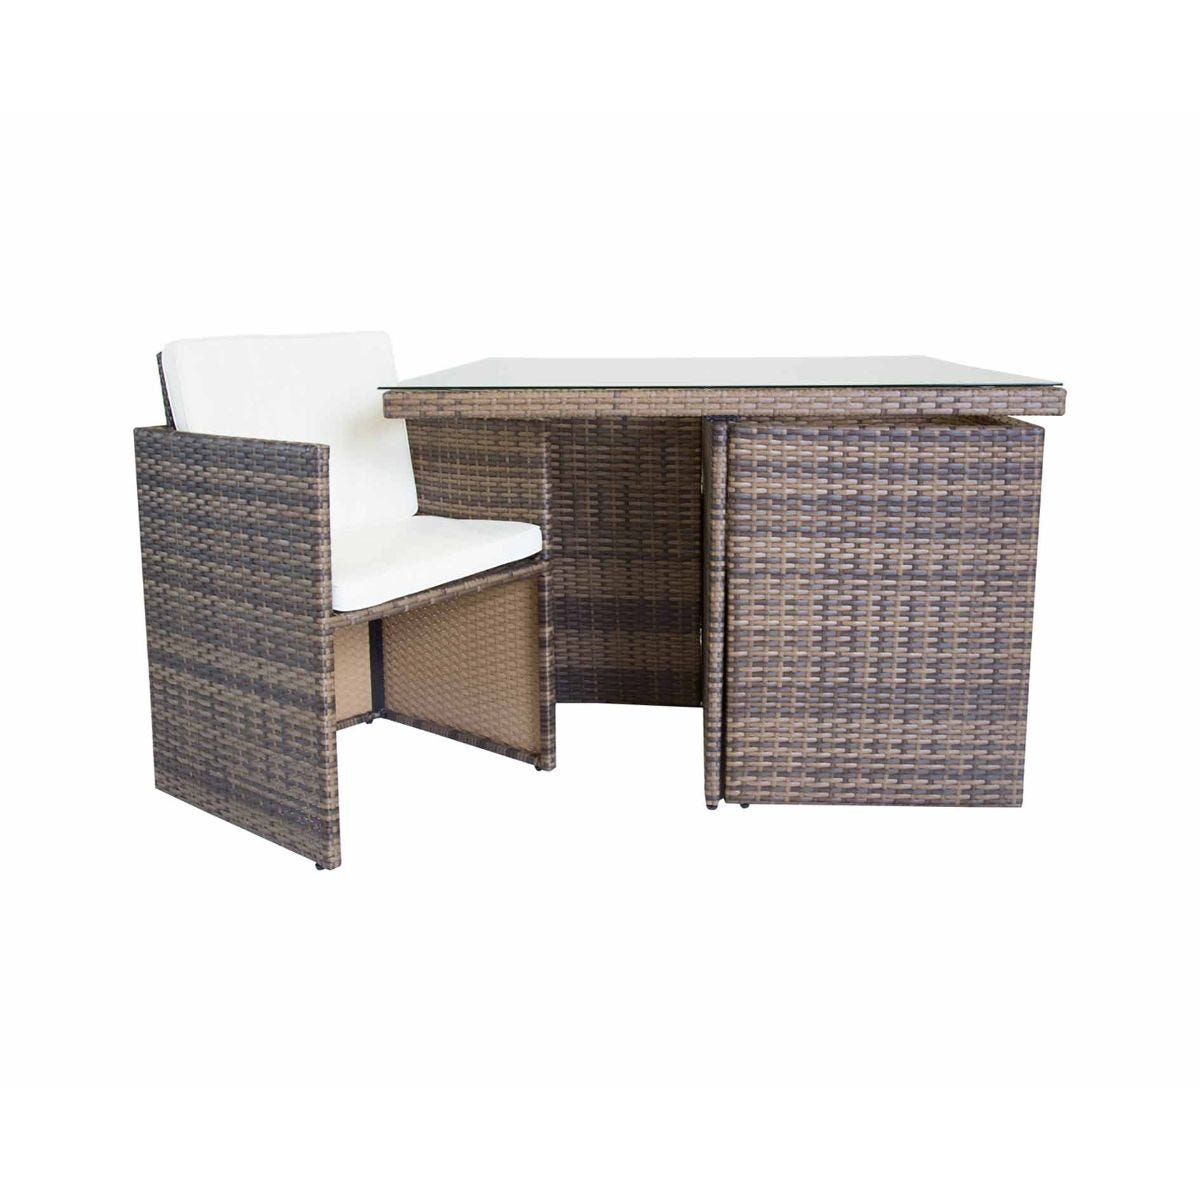 Charles Bentley Verona 4 Seater Rattan Cube Dining Set, Brown